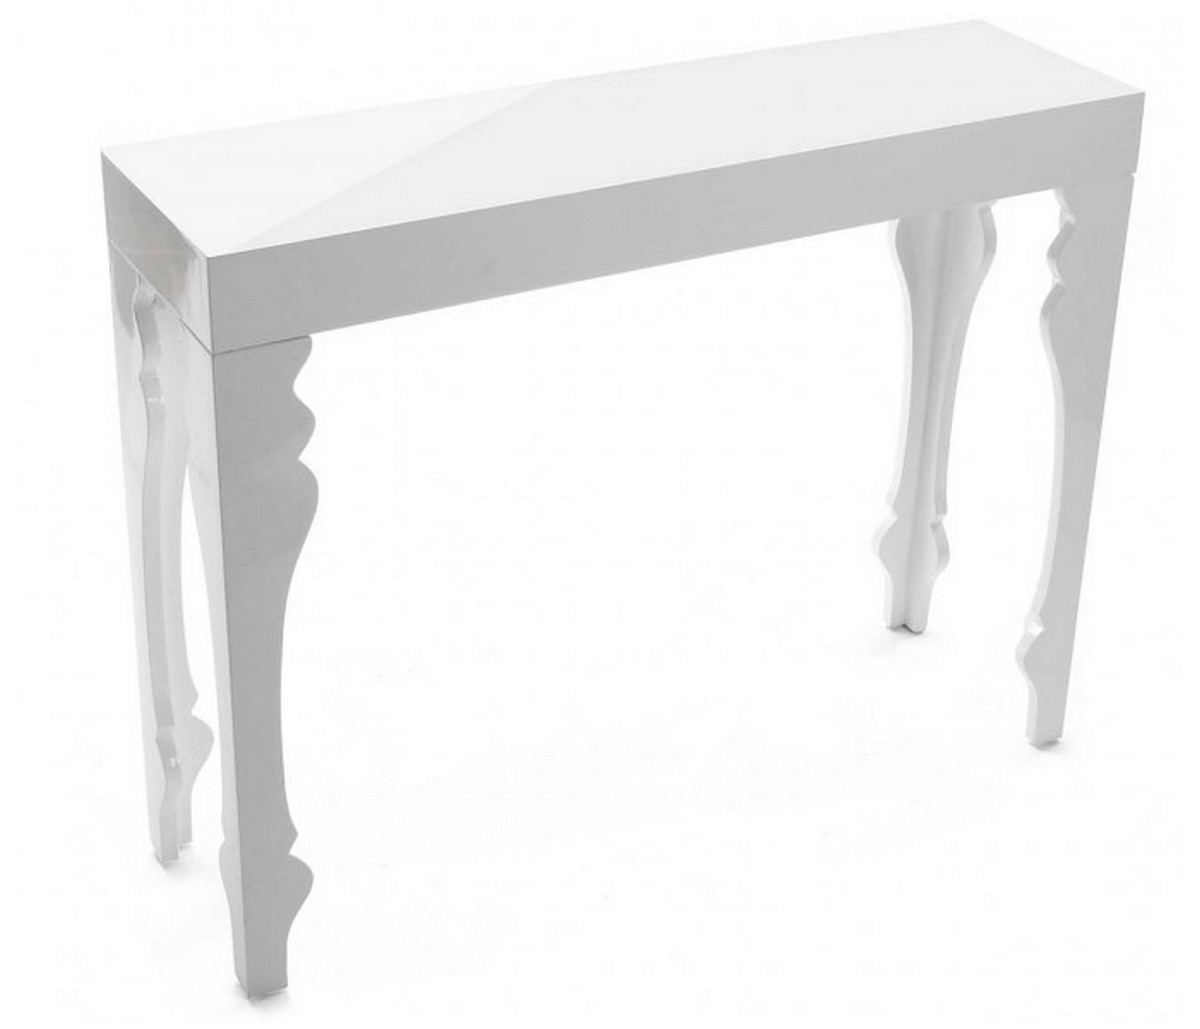 Table Blanche Table Console Blanche Baroque Bois Laqué Versa Kdesign